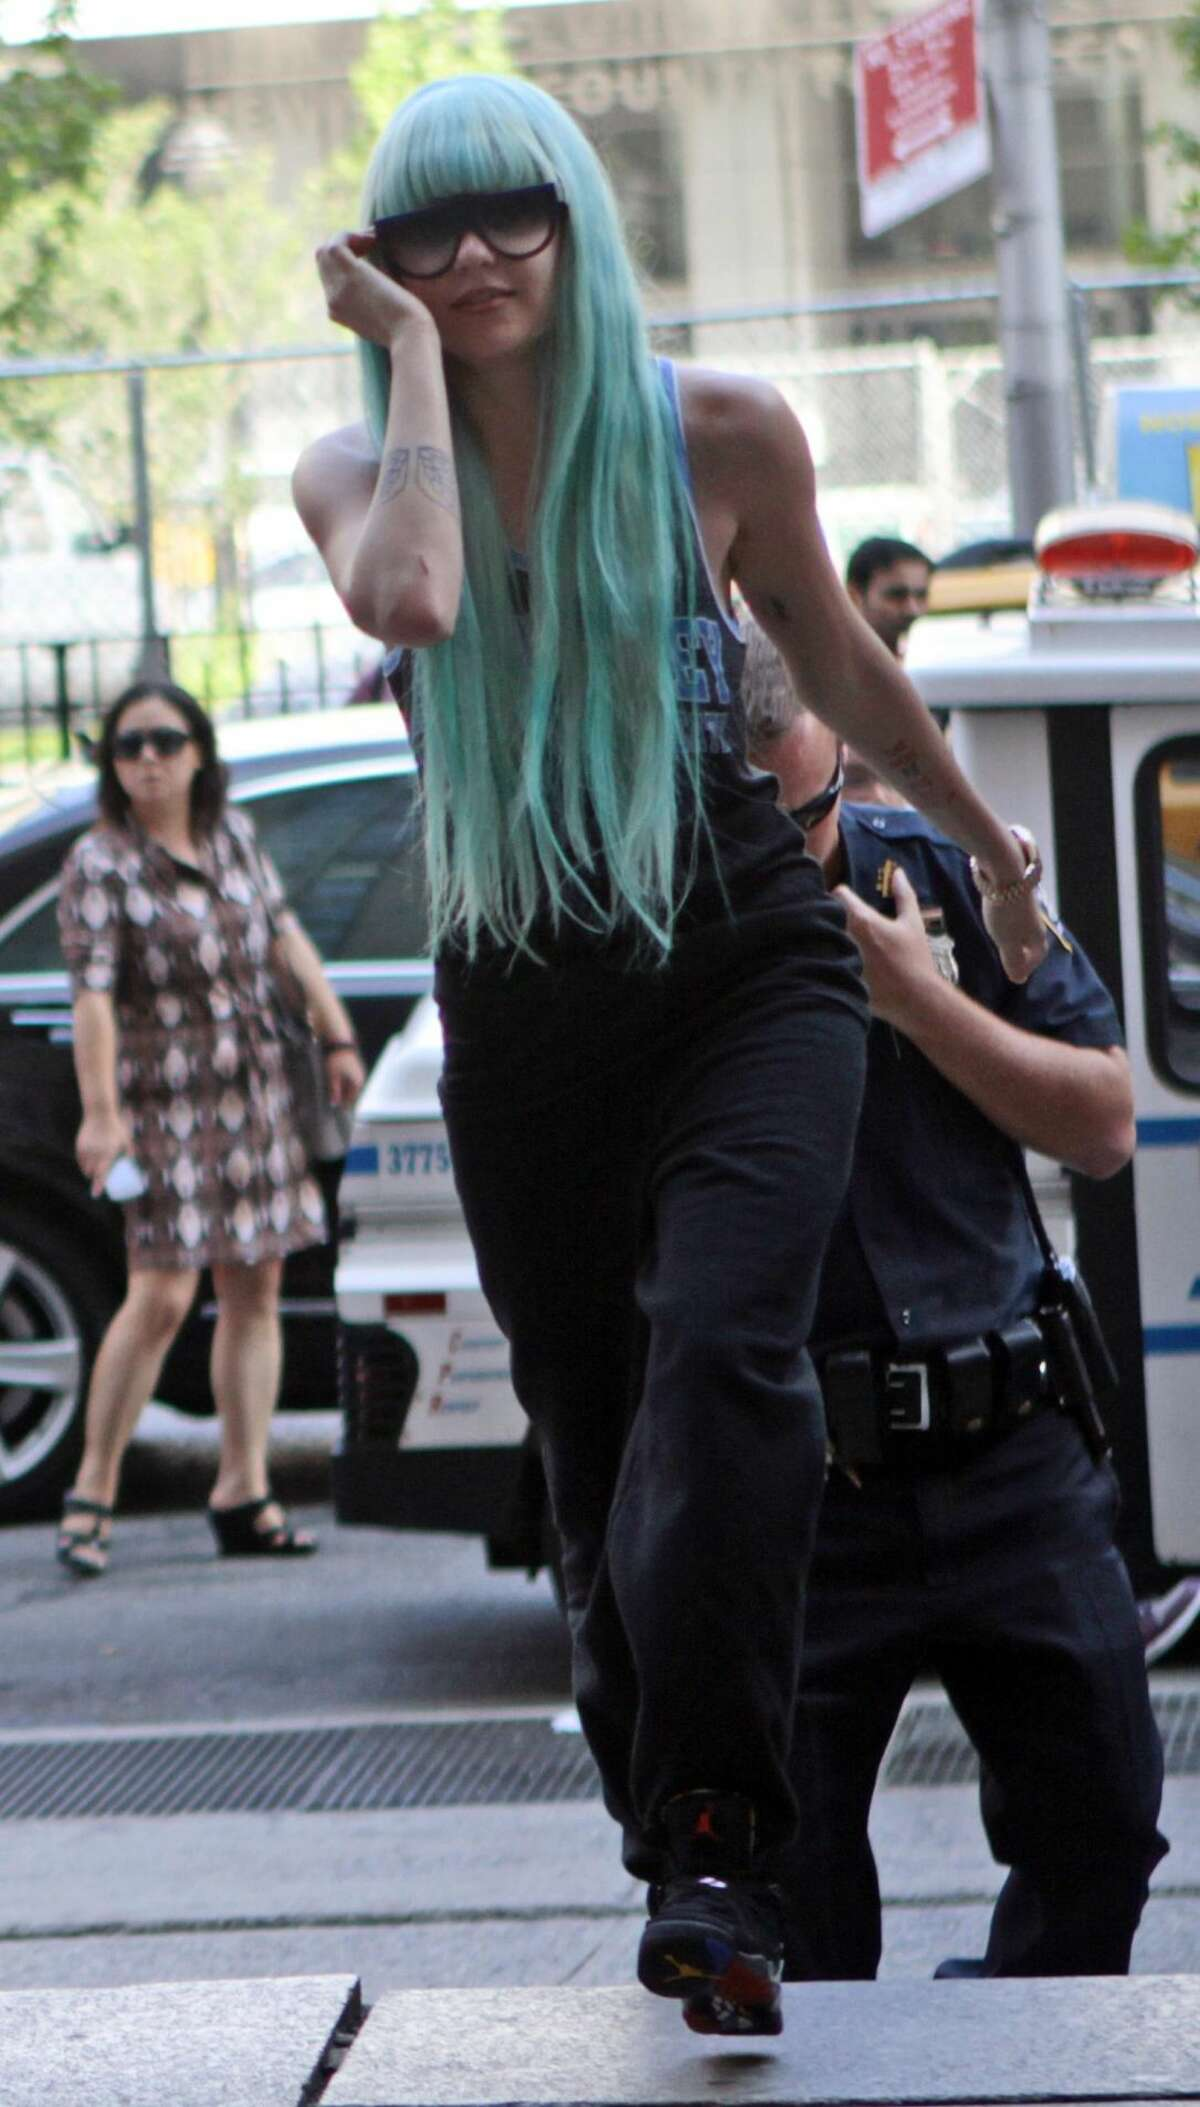 Amanda Bynes arrives for a court appearance, in New York, Tuesday, July 9, 2013. The 27-year-old actress is charged with reckless endangerment and attempted tampering with physical evidence. Bynes was arrested in May after building officials called police to complain she was smoking pot in the lobby. Officers went to her apartment where they say they saw a bong sitting on the kitchen counter. Prosecutors say she tossed the bong out the window in front of the officers. (AP Photo/Bethan McKernan)